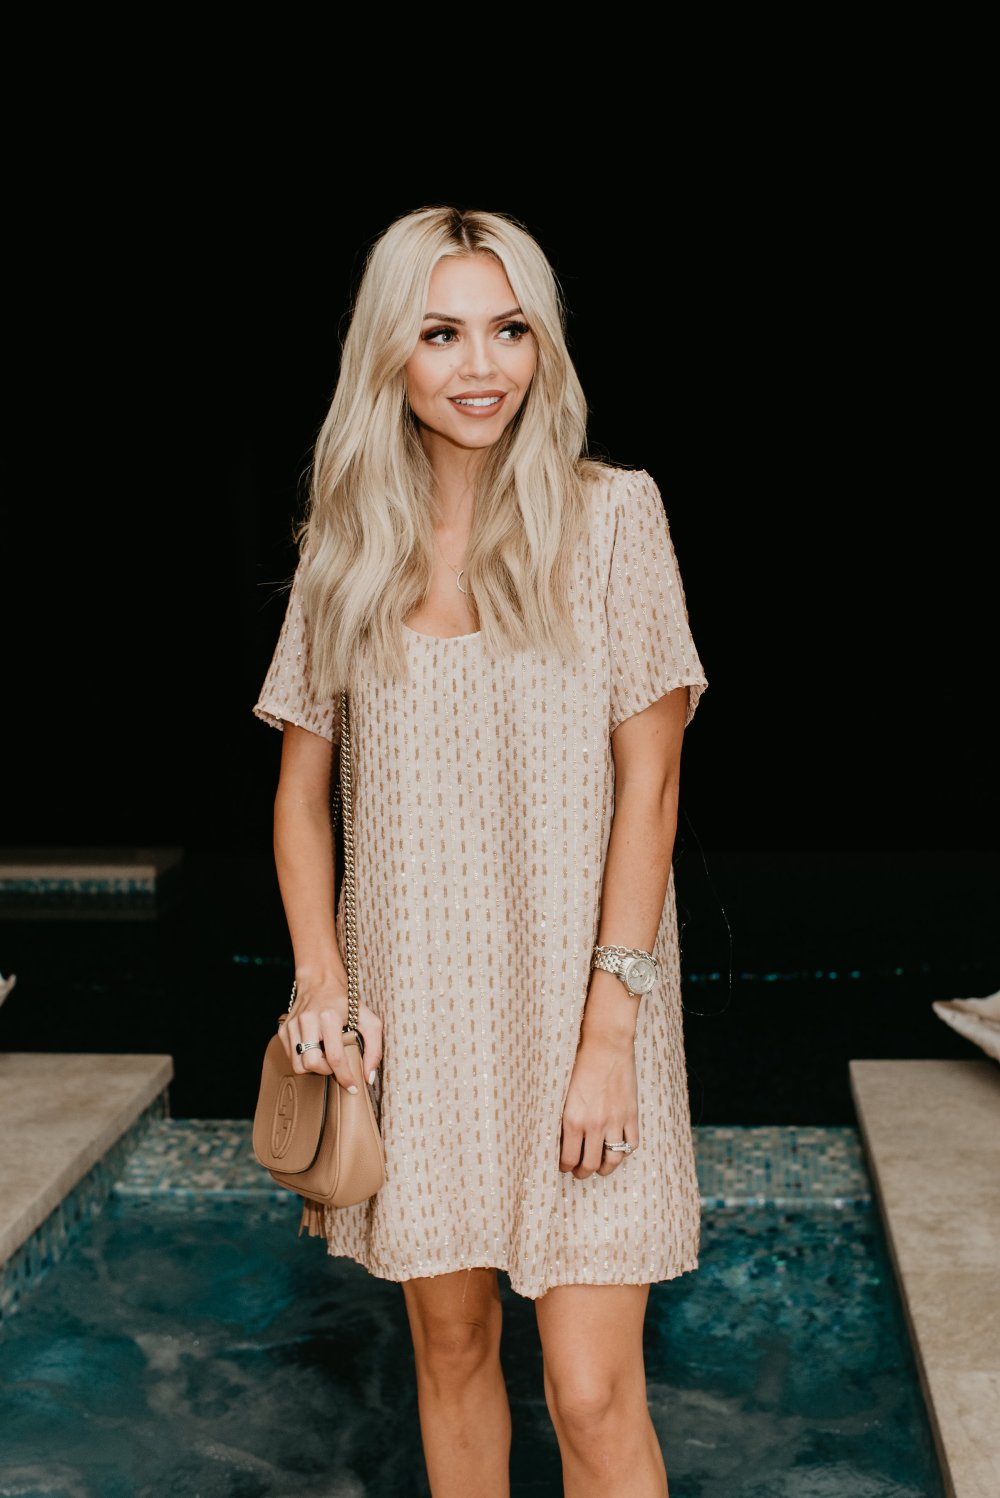 The perfect sequin dress for a night out! Whether its date night or girls night this dress is adorable! #trulydestiny #datenight #girlsnight #sequinoutfits #womensfashion #dressfashion